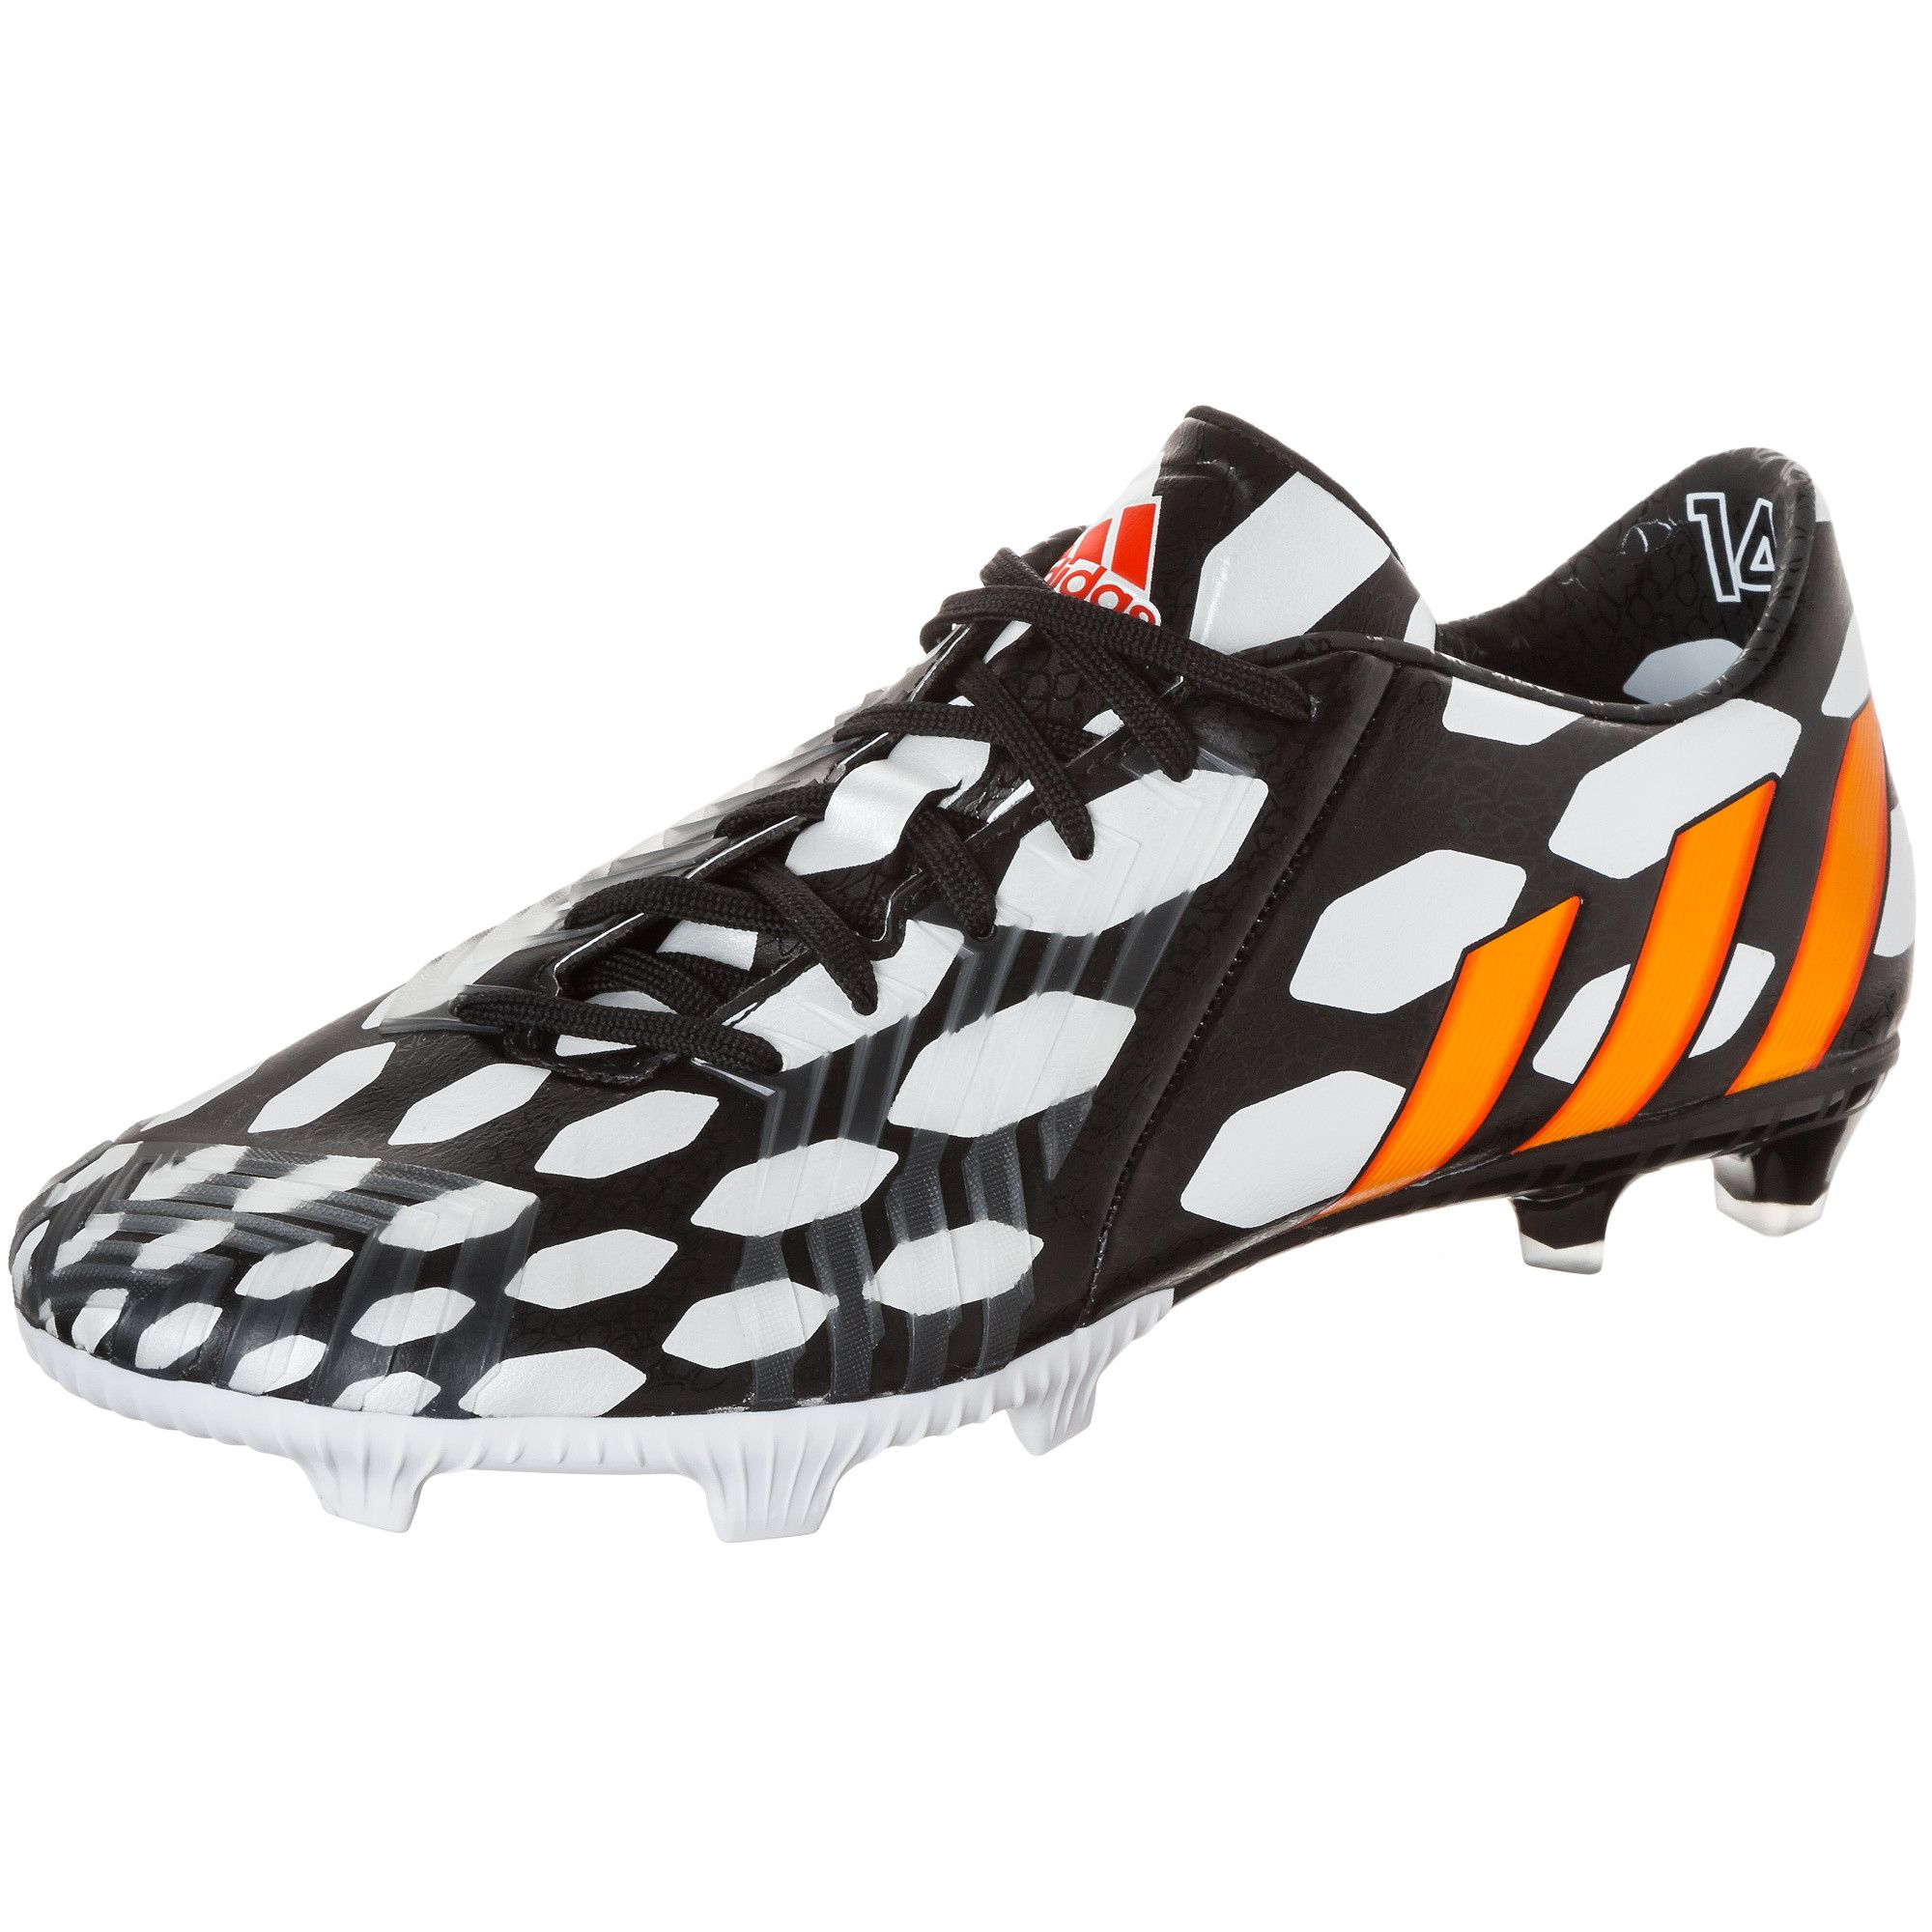 92fe4a9a008 adidas Predator Absolion LZ TRX FG (World Cup Battle Pack). Find this Pin  and more on Men s Soccer Cleats ...